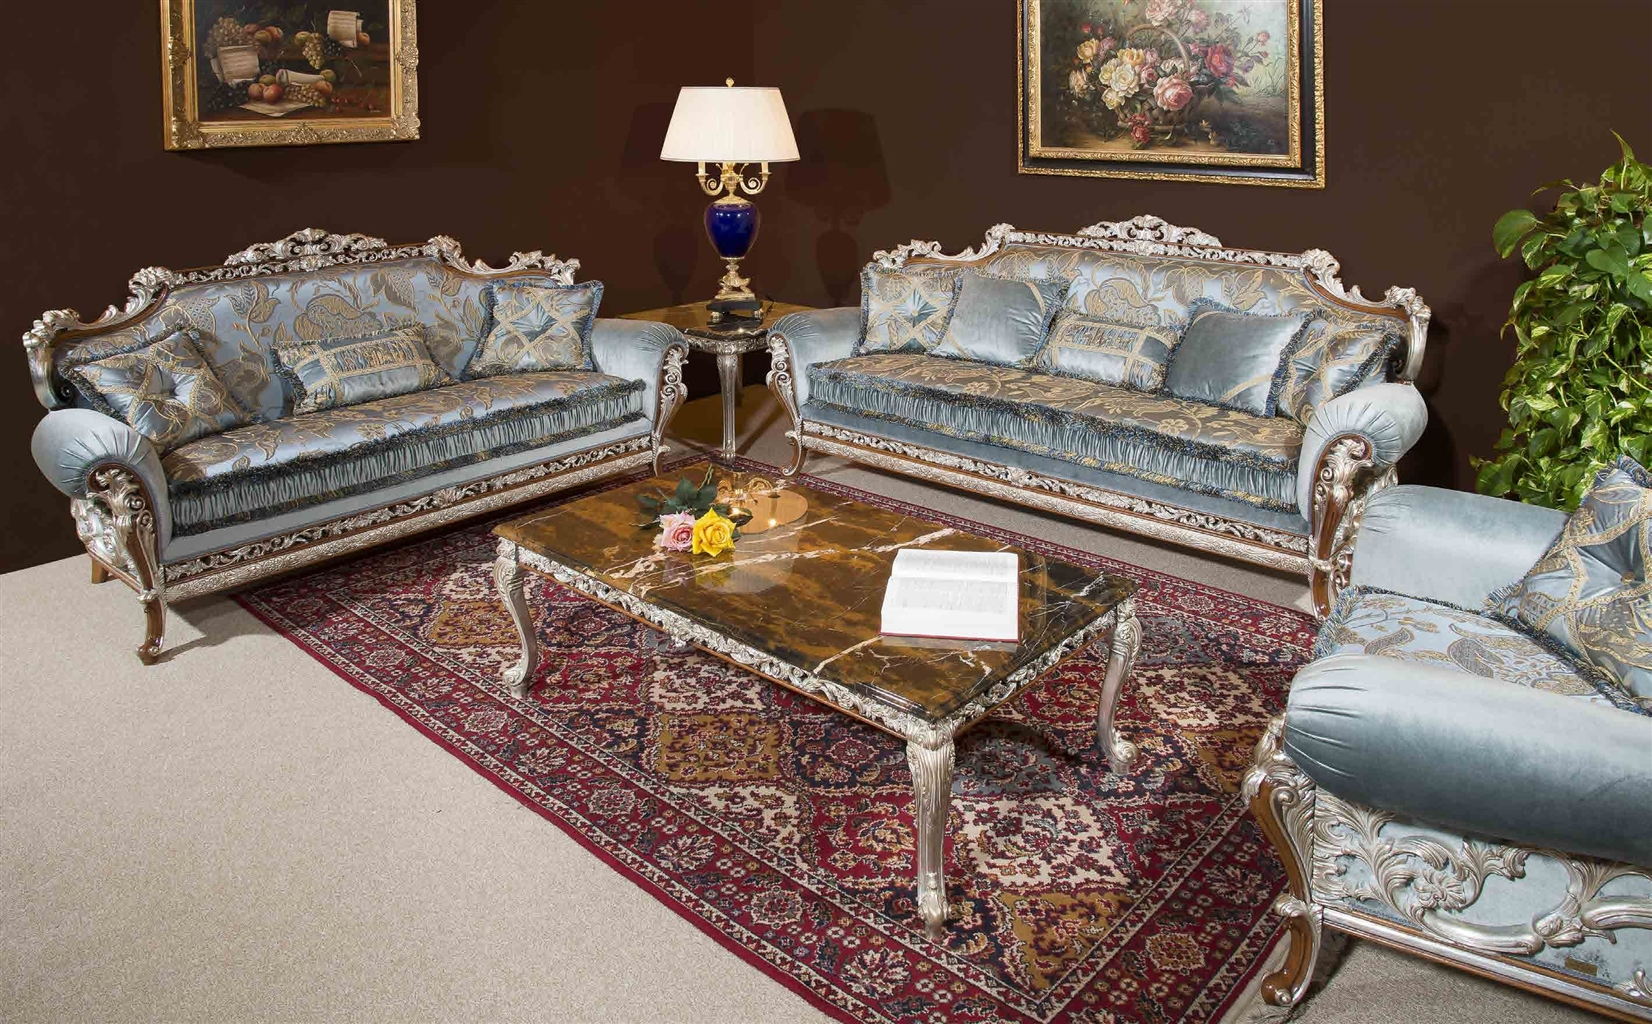 Luxury Leather U0026 Upholstered Furniture Baby Blue Sofa And Arm Chair.  Handmade In Europe.